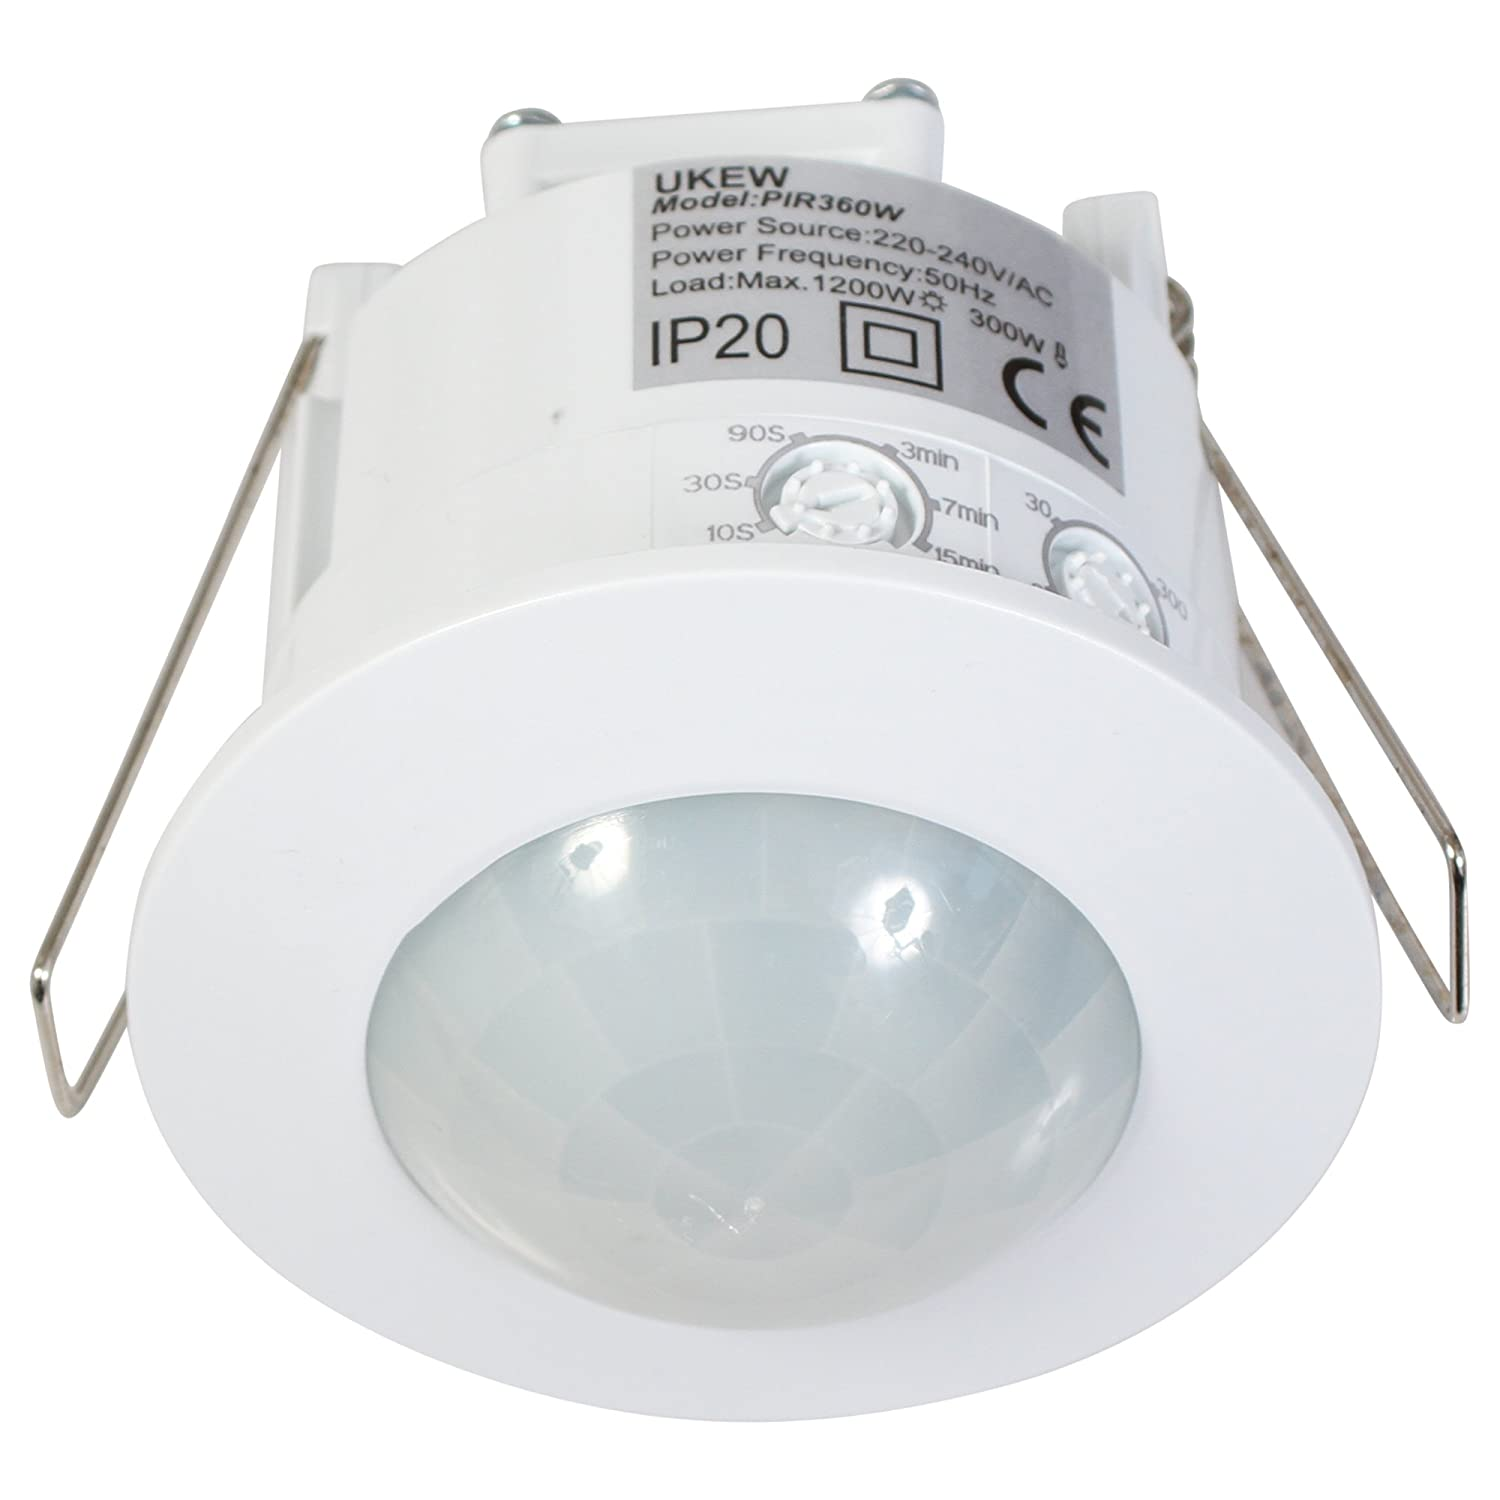 Recessed 360 Degree Pir Ceiling Occupancy Motion Sensor Detector Light Further Alarm Wiring Diagram Also 1200w Switch